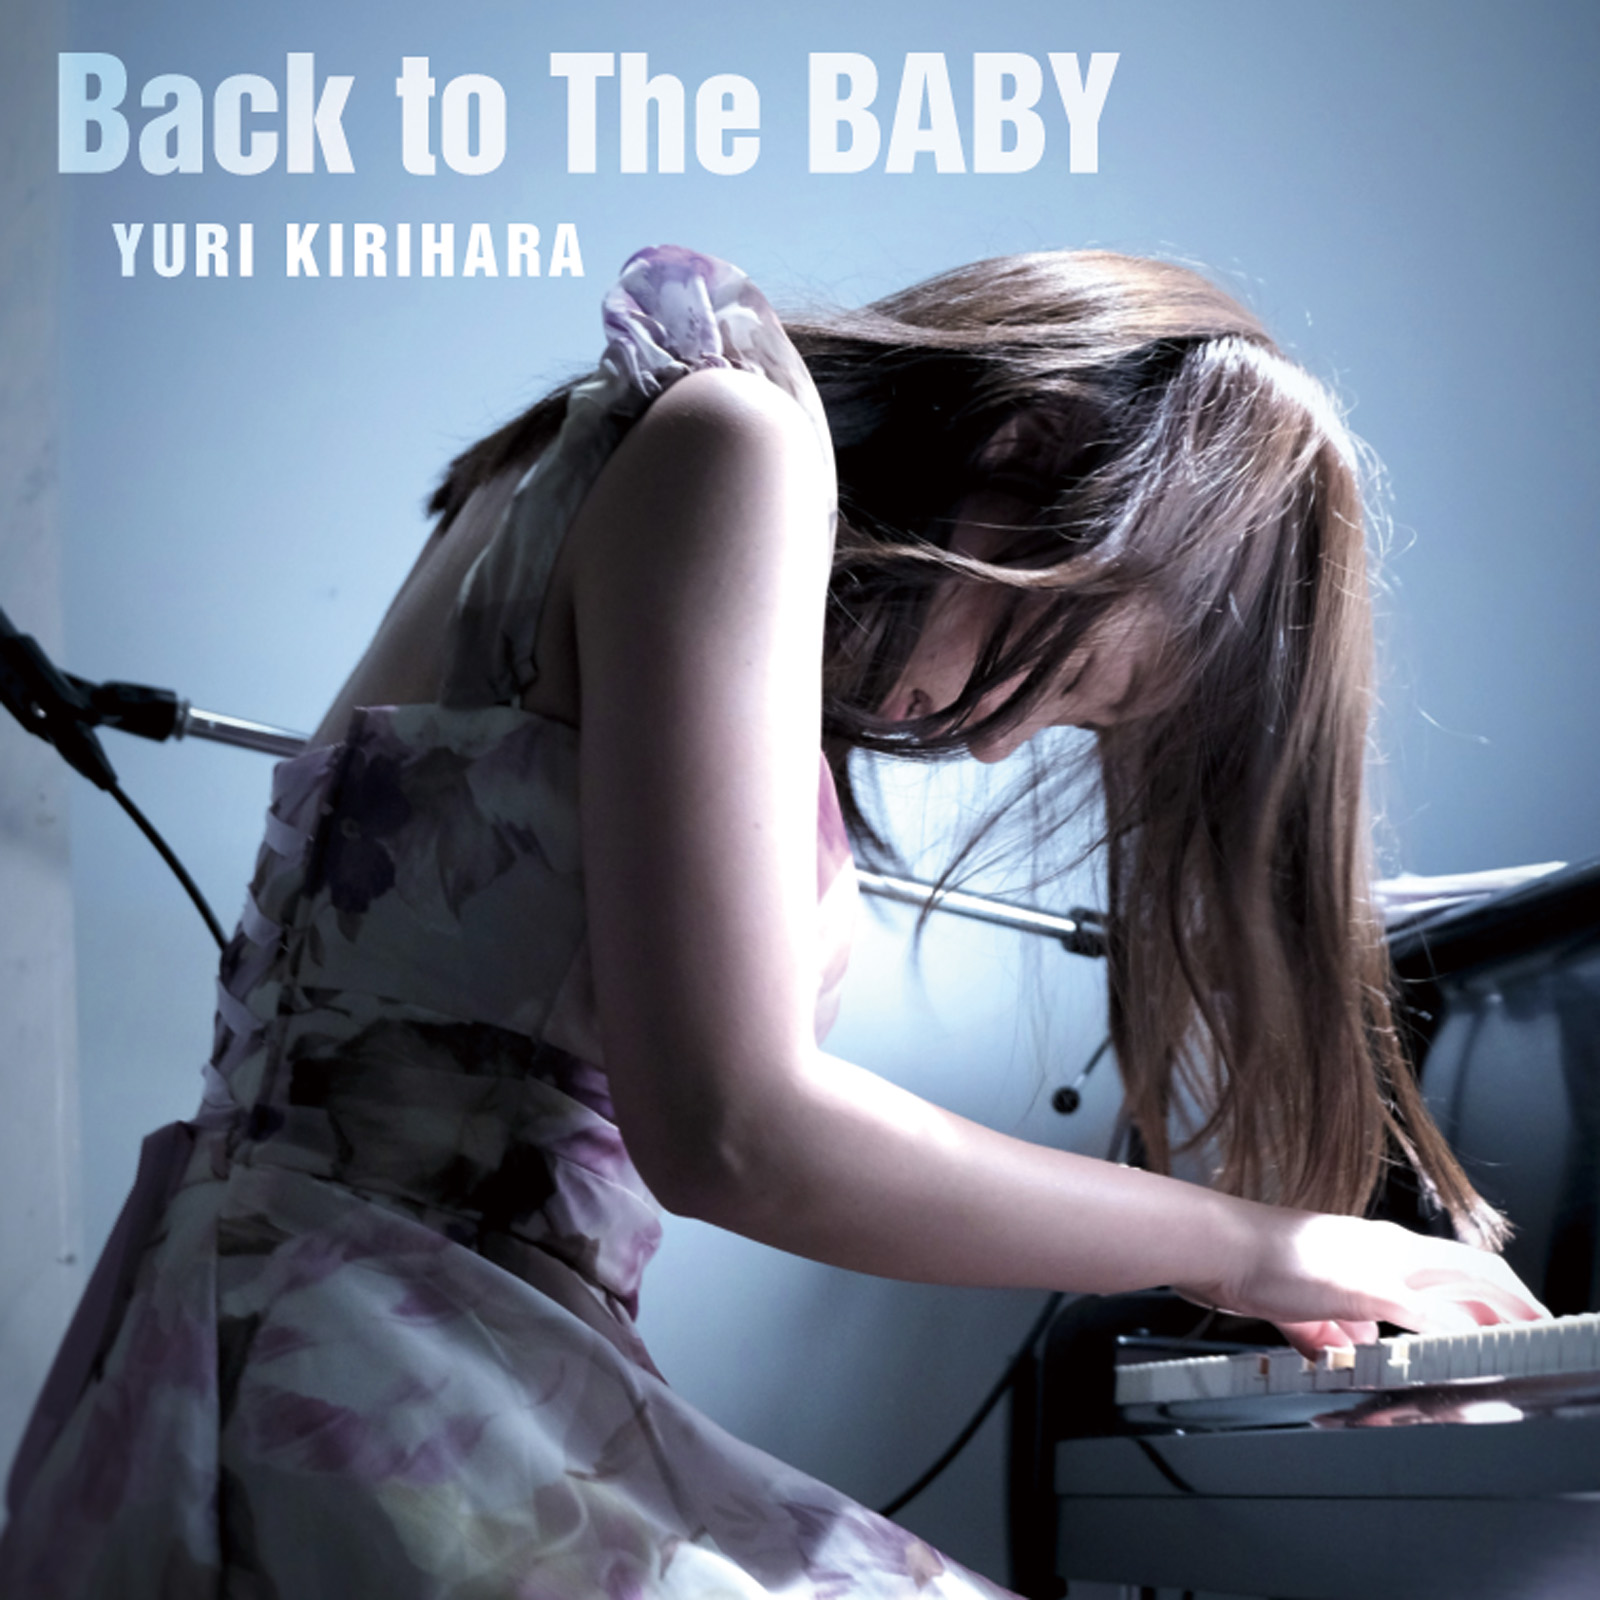 Back to The BABY